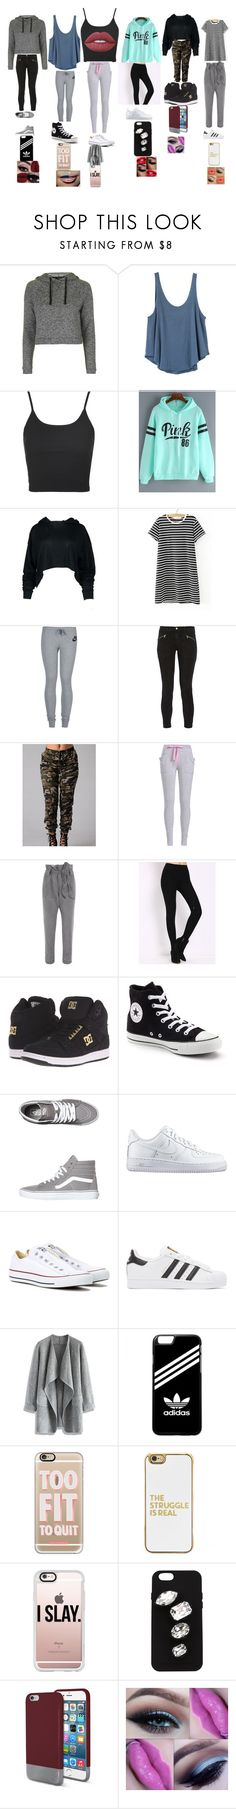 """""""just random outfits"""" by jtbae ❤ liked on Polyvore featuring Topshop, RVCA, WithChic, NIKE, J Brand, Vivienne Westwood Anglomania, DC Shoes, Converse, Vans and adidas Originals"""